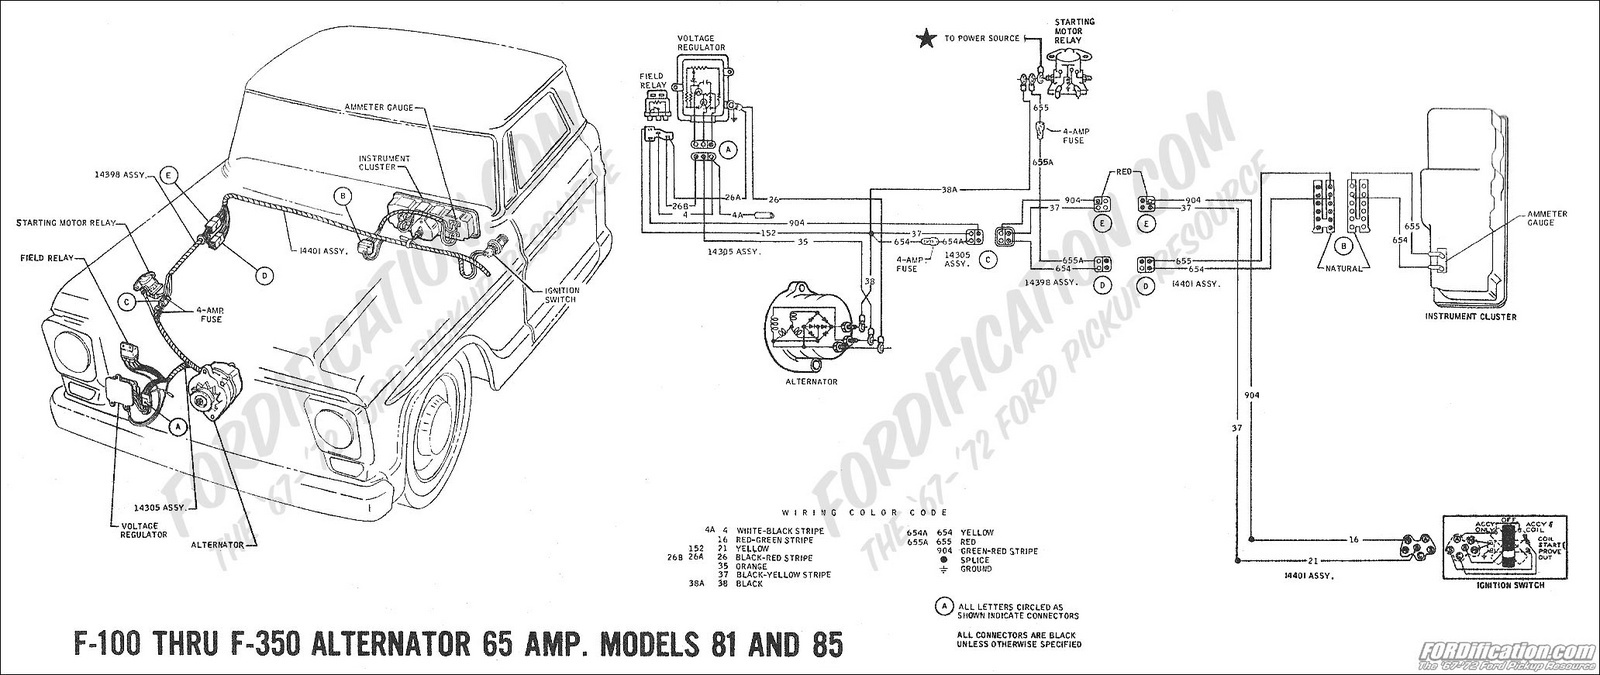 73 ford f 250 ignition wiring example electrical wiring diagram u2022 rh cranejapan co 1980 Ford Truck Wiring Diagram 1970 ford f100 ignition wiring diagram